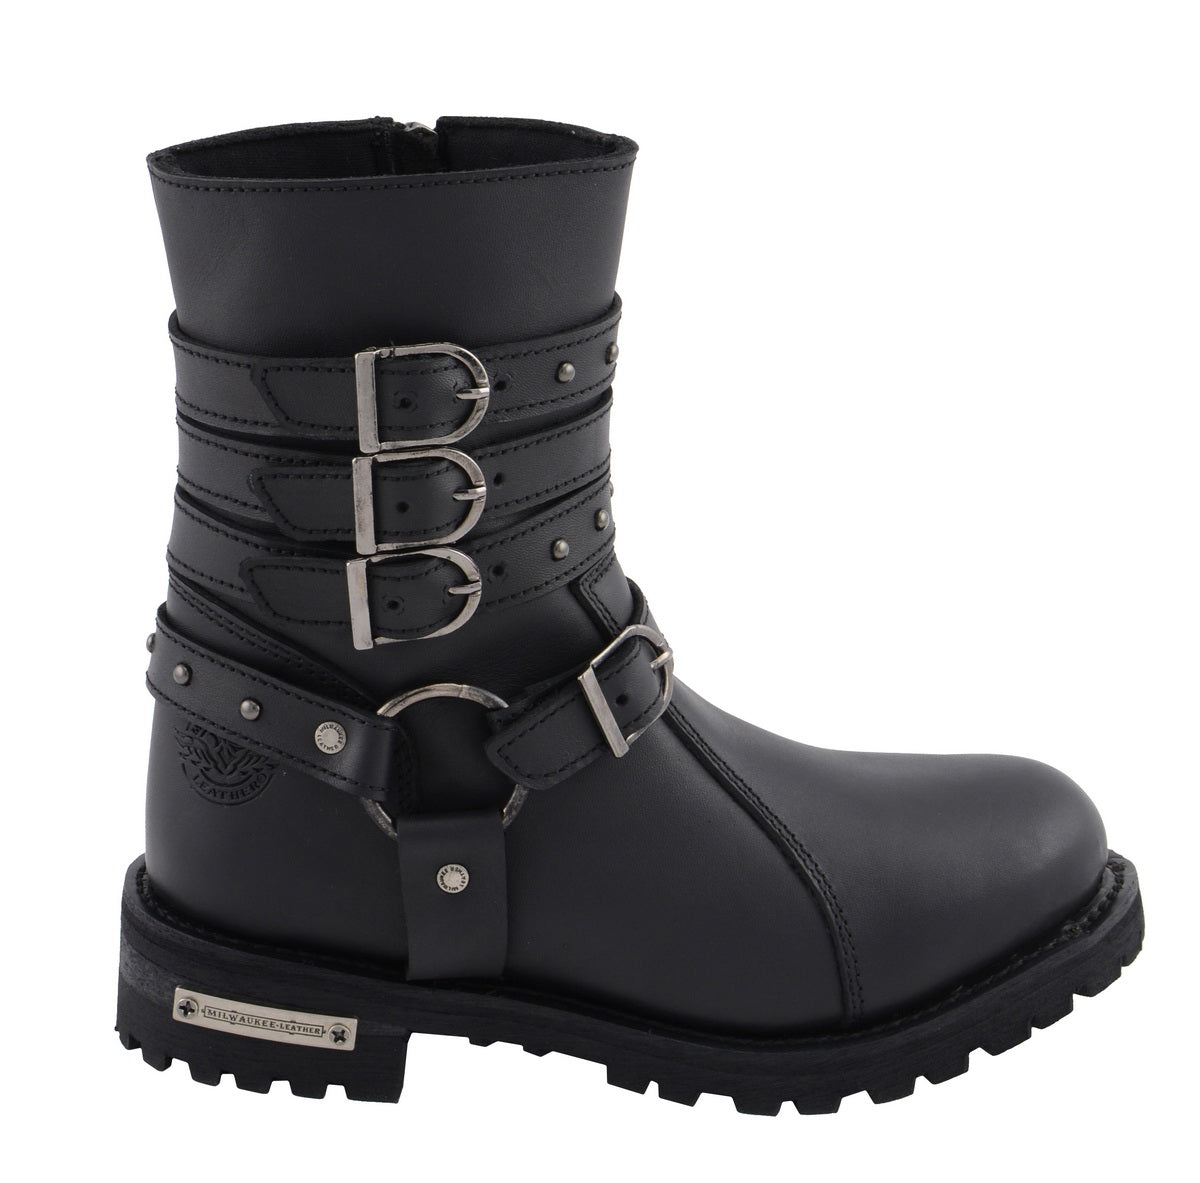 Black, Size 5 MBL9399-BLACK-5 Milwaukee Leather Womens Harness Boot